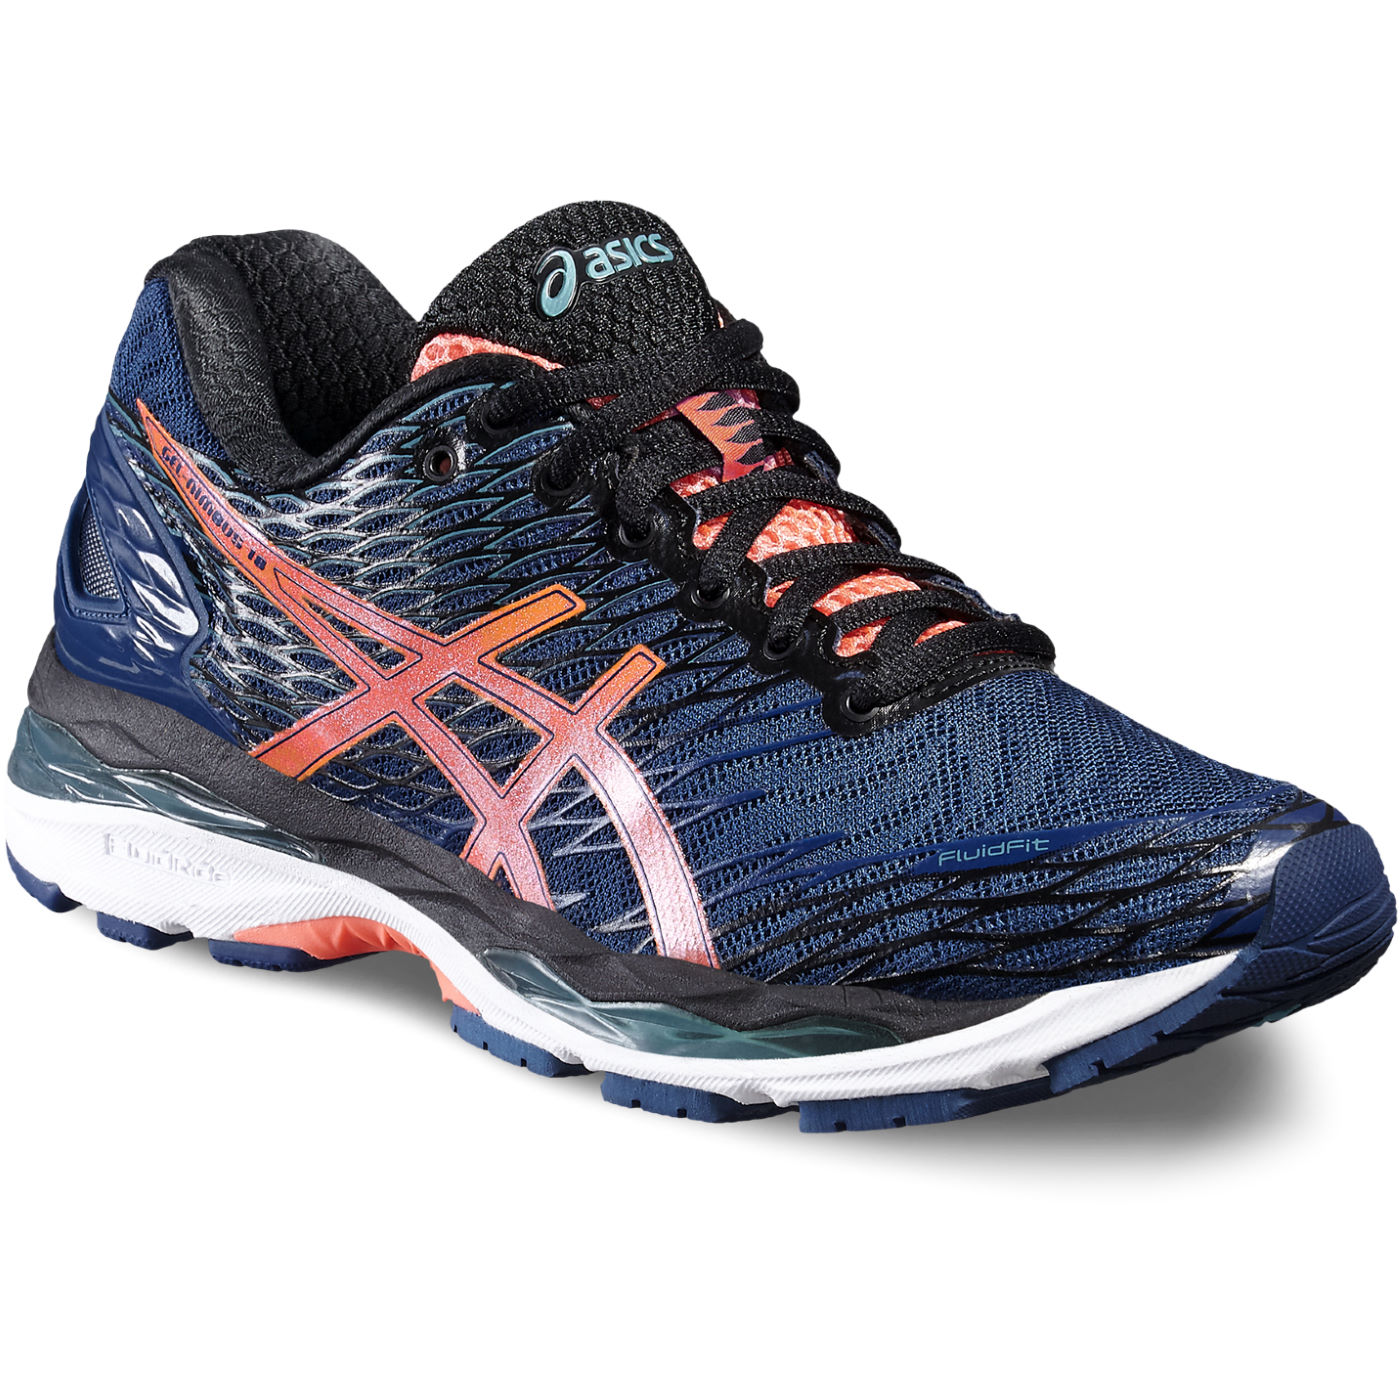 Asics Women S Gel Foundation  Shoes Aw